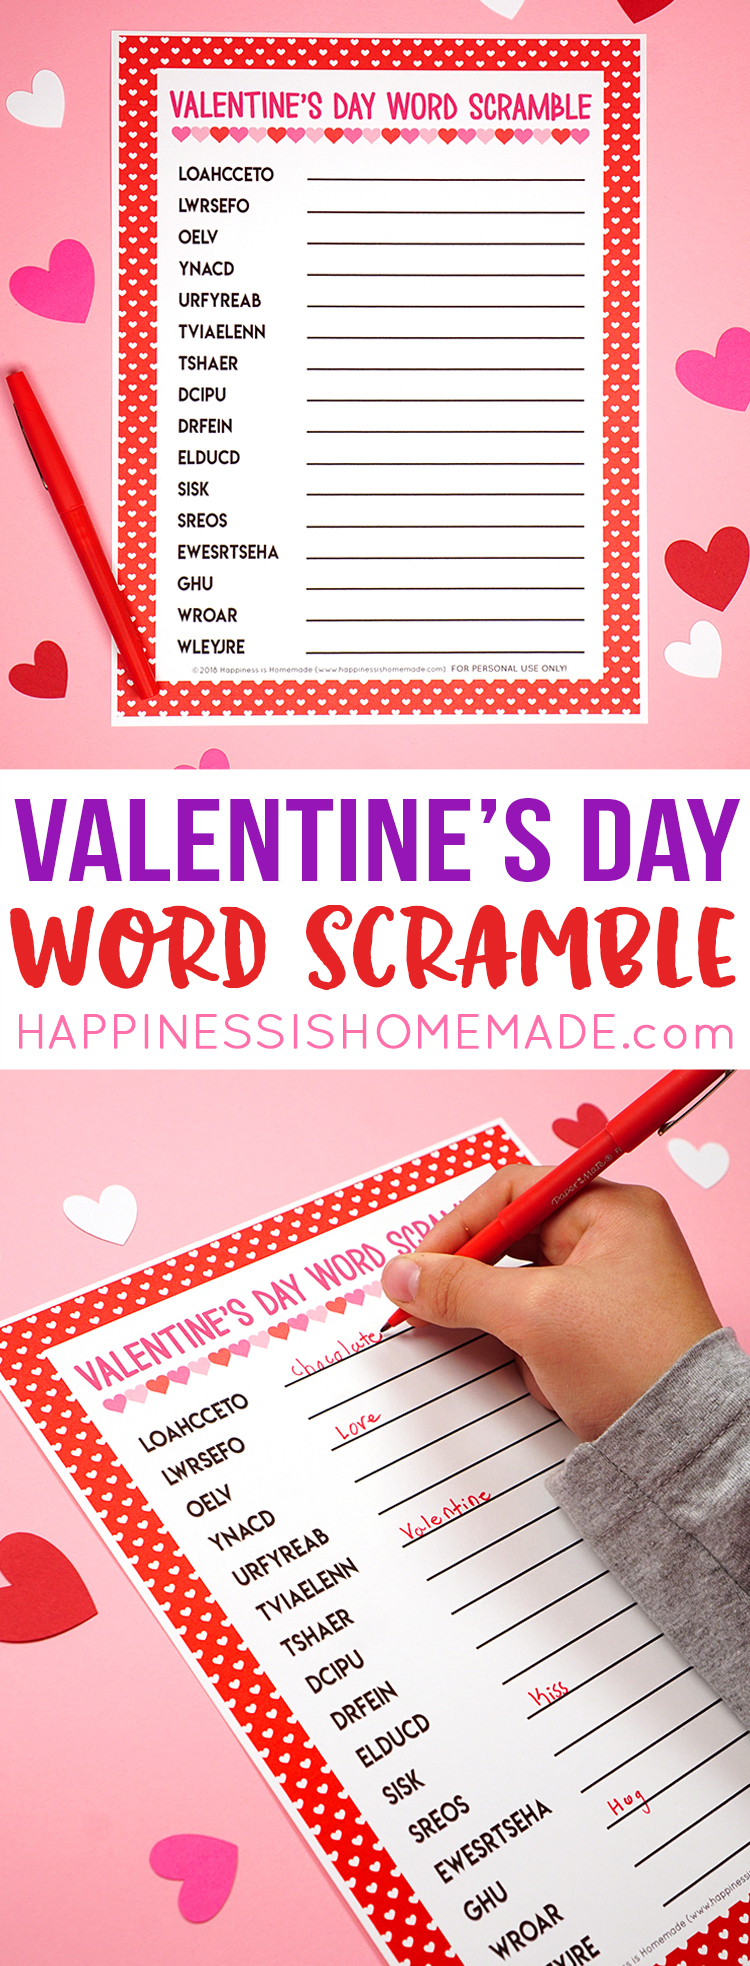 This printable Valentine's Day Word Scramble game is a ton of fun! It's the perfect Valentine's game for teachers, Scout troops, playgroups, family fun night, and more!